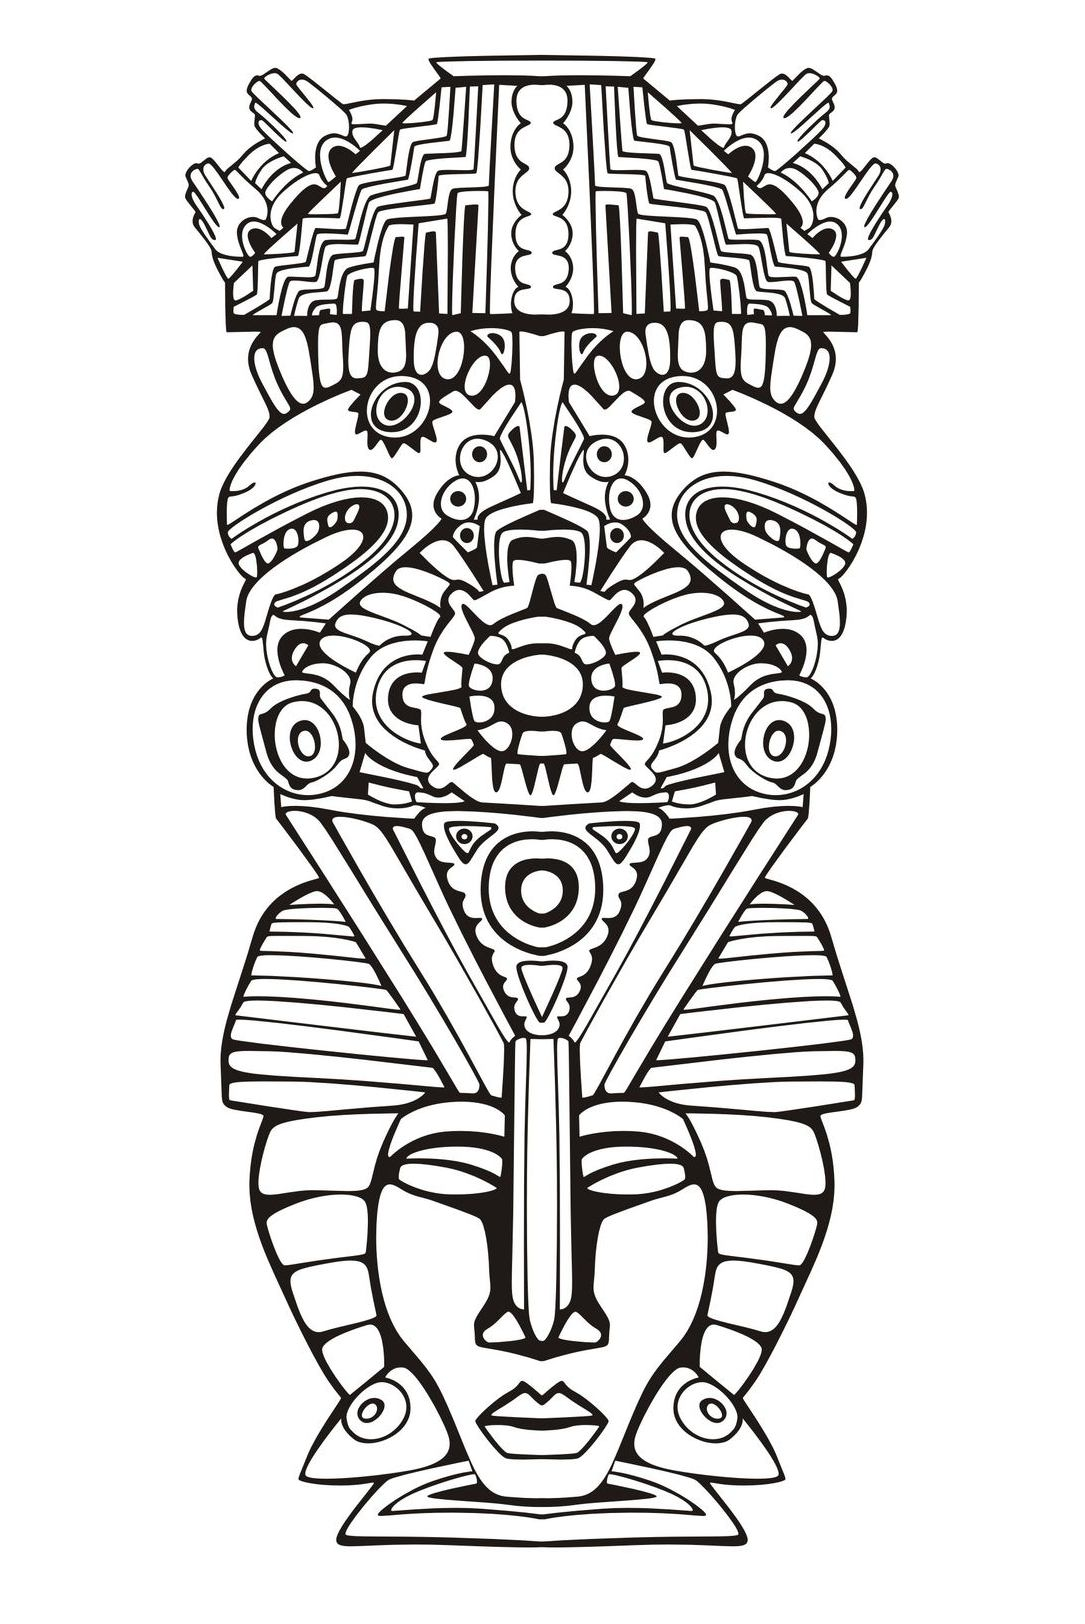 mesoamerican coloring pages - photo#20